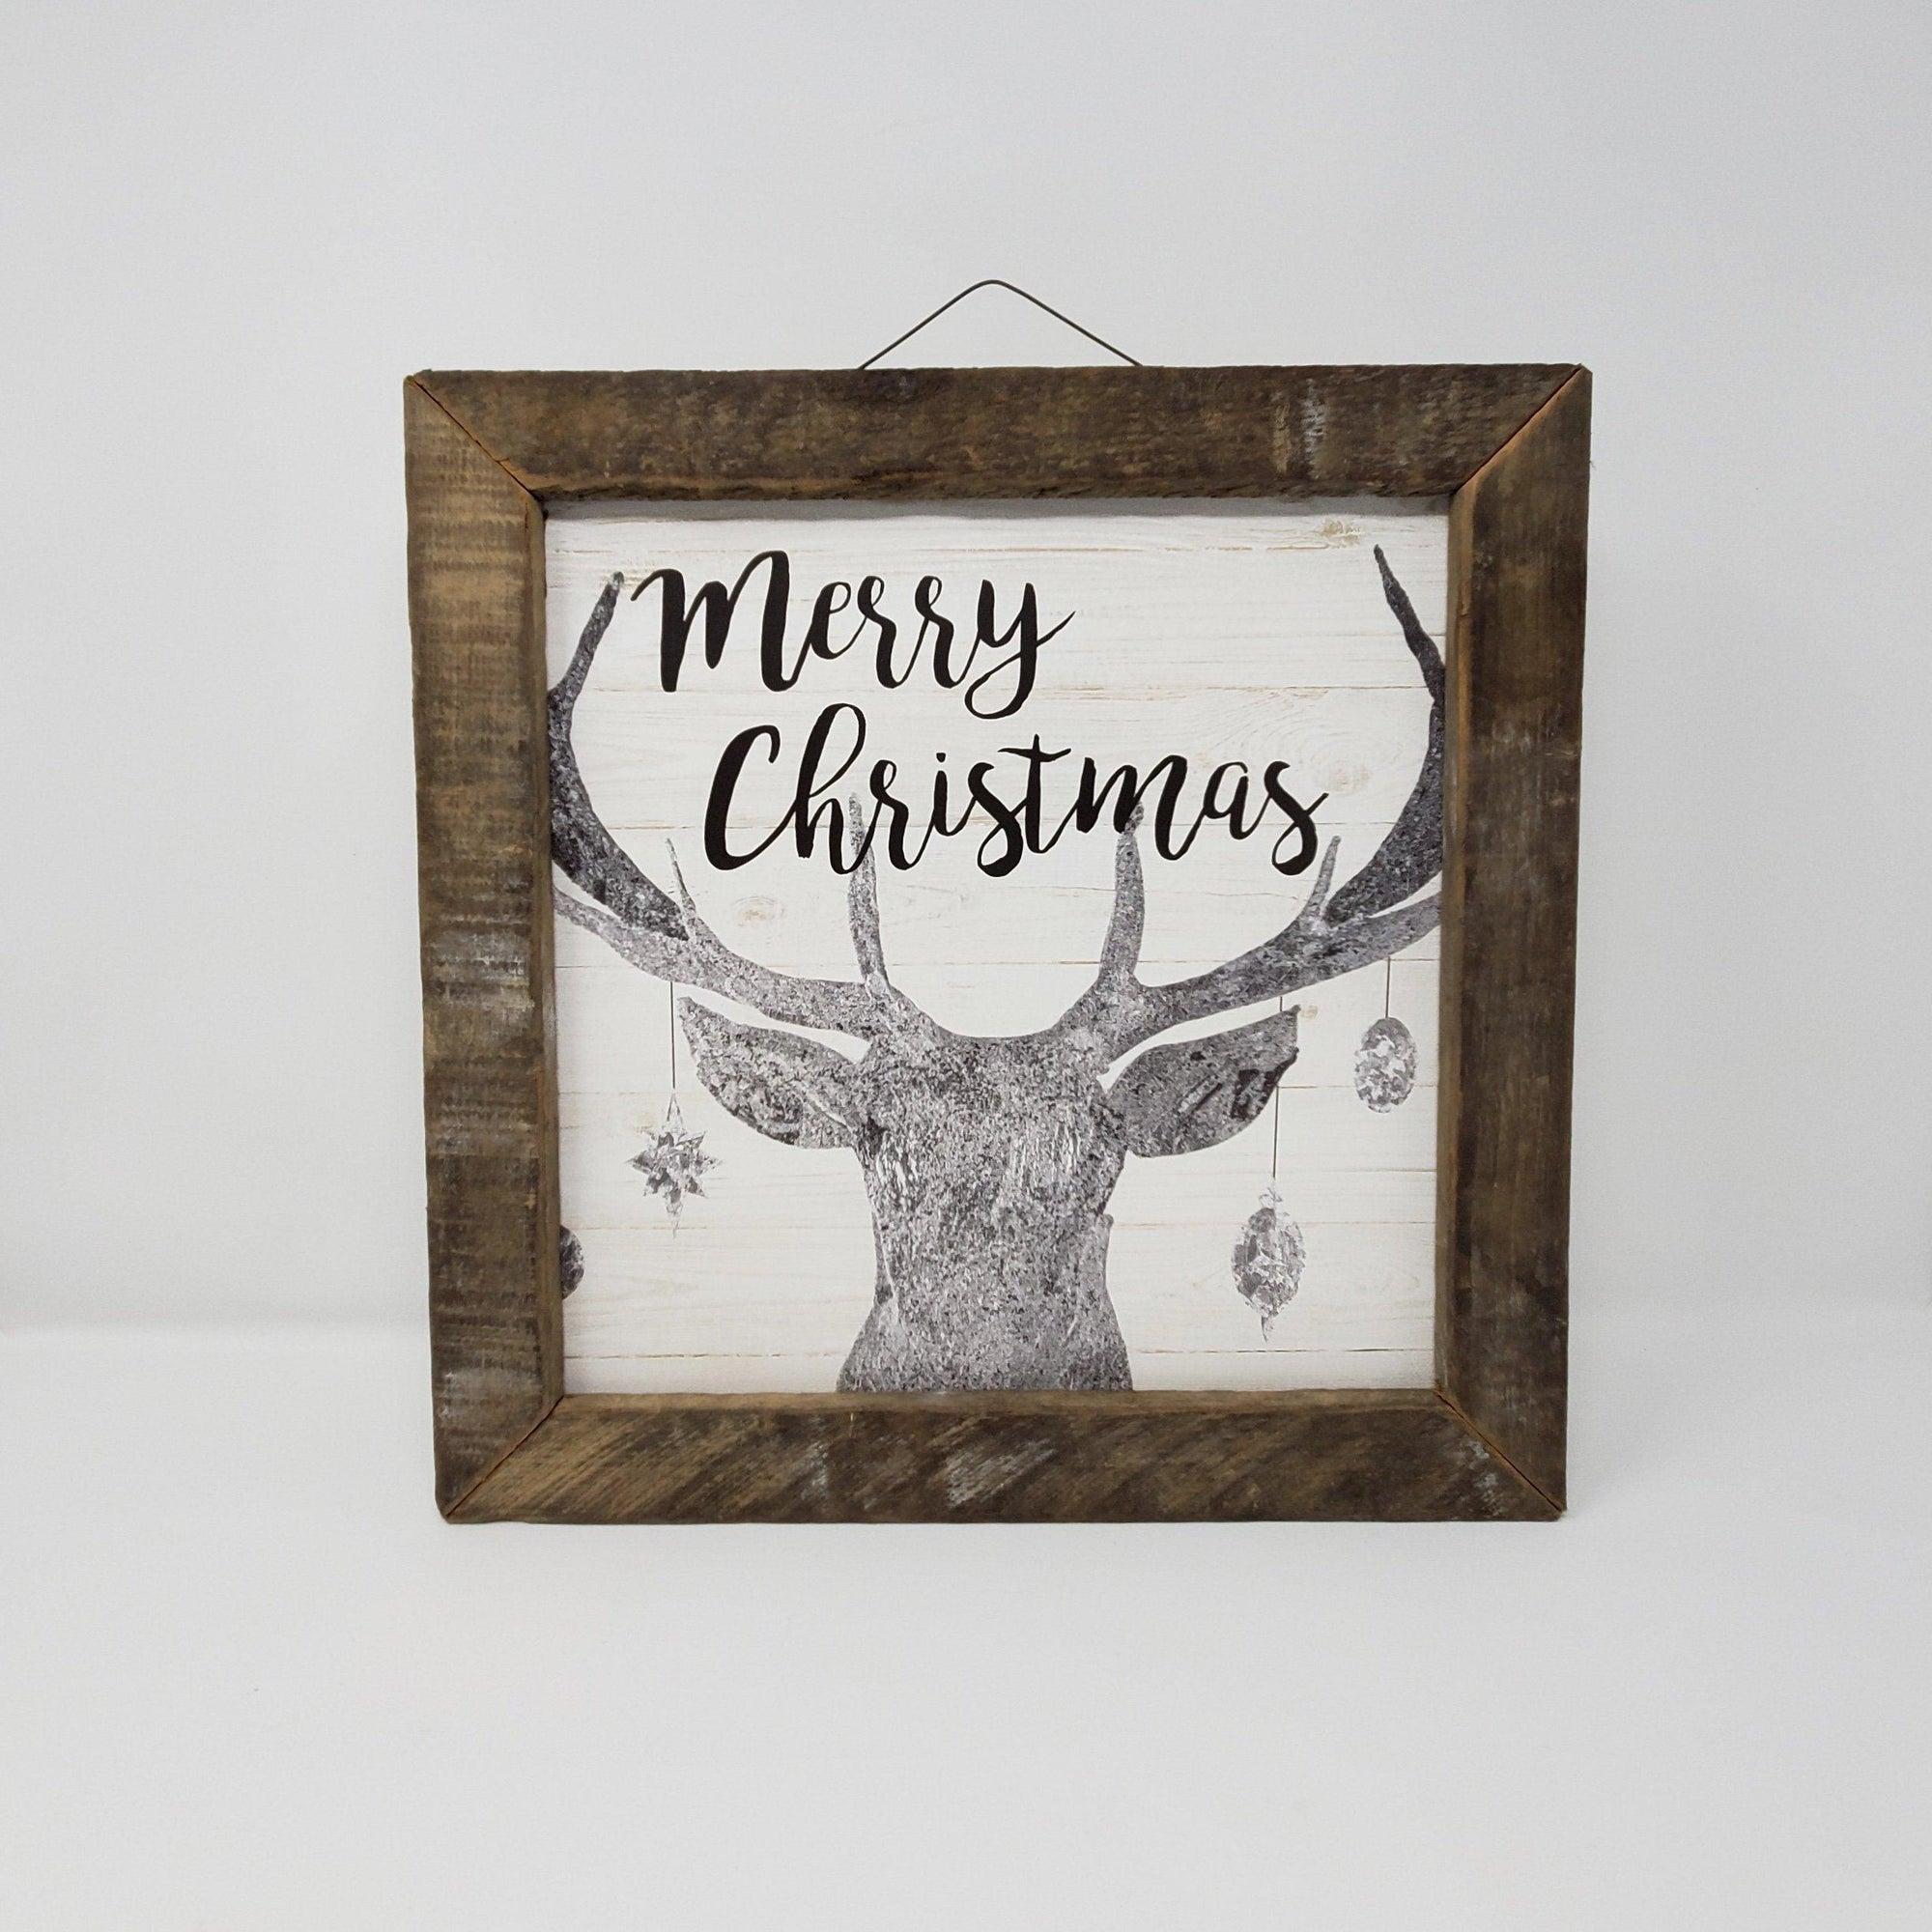 Merry Christmas Deer with Ornaments Cabin Decor Holiday A Rustic Feeling